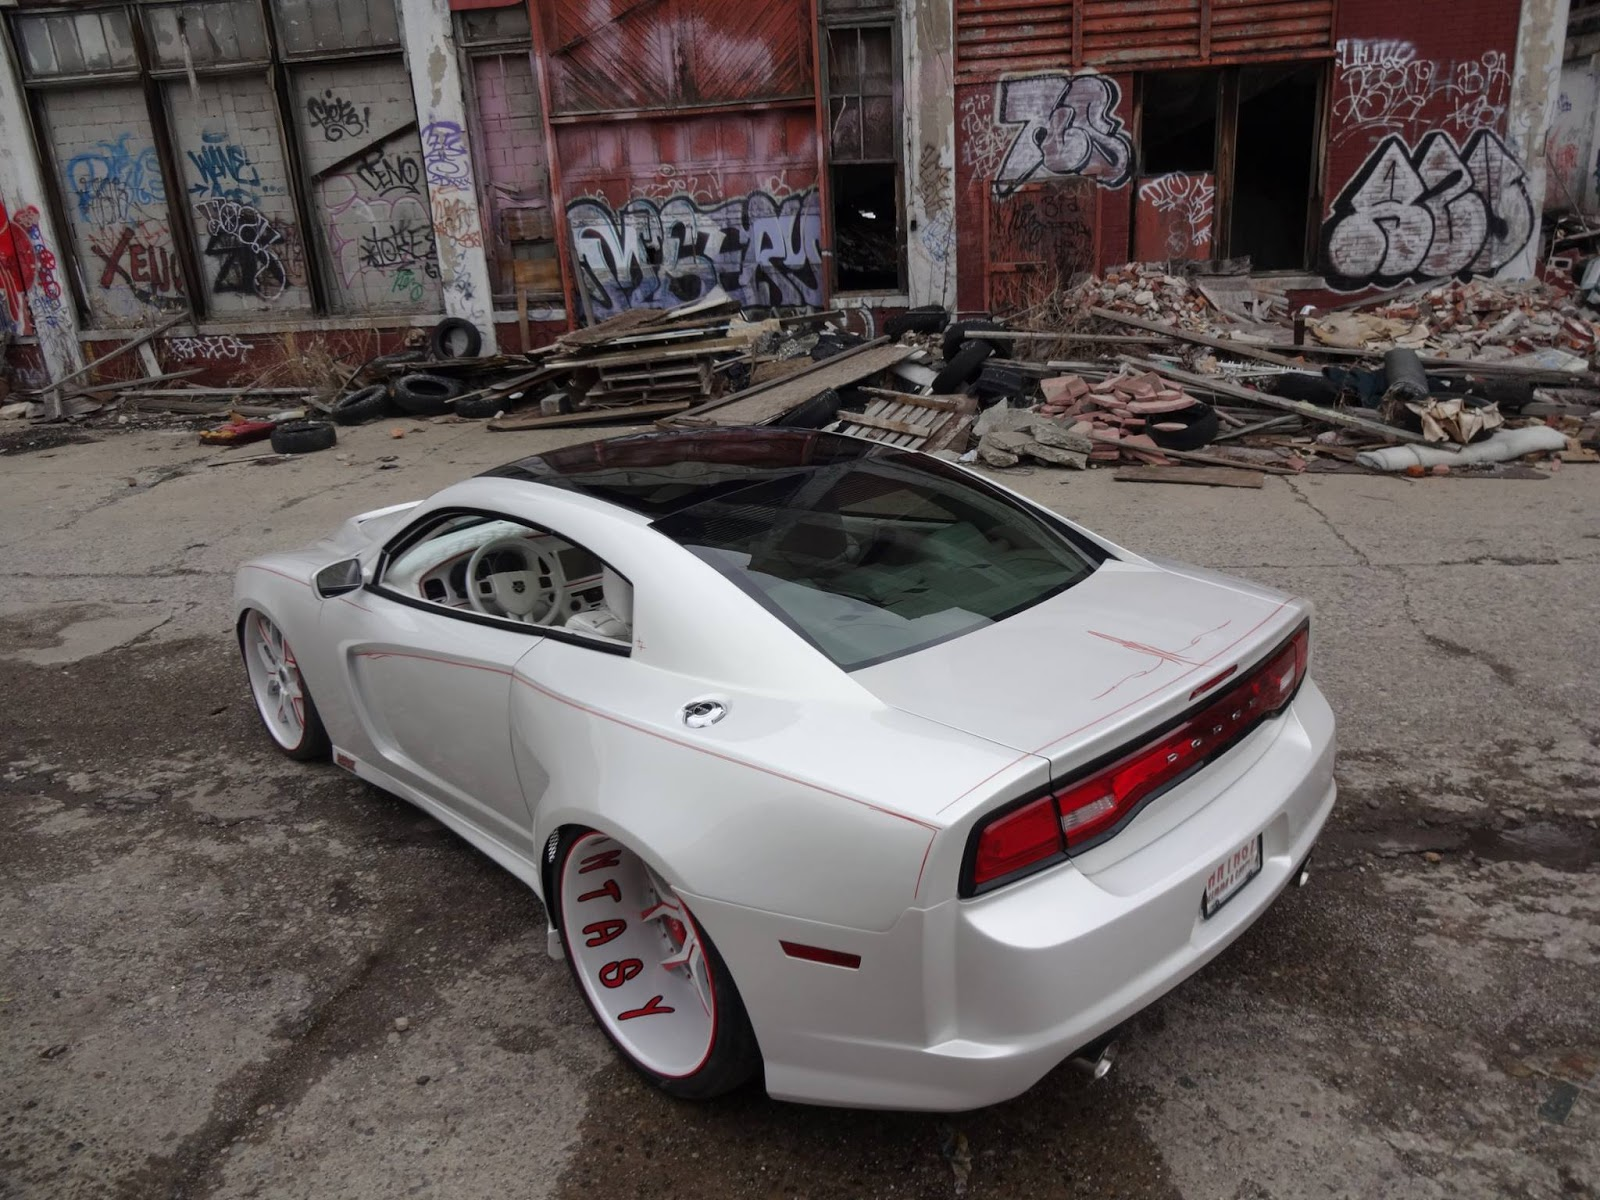 This One Off Dodge Charger Coupe Conversion Is The Anti